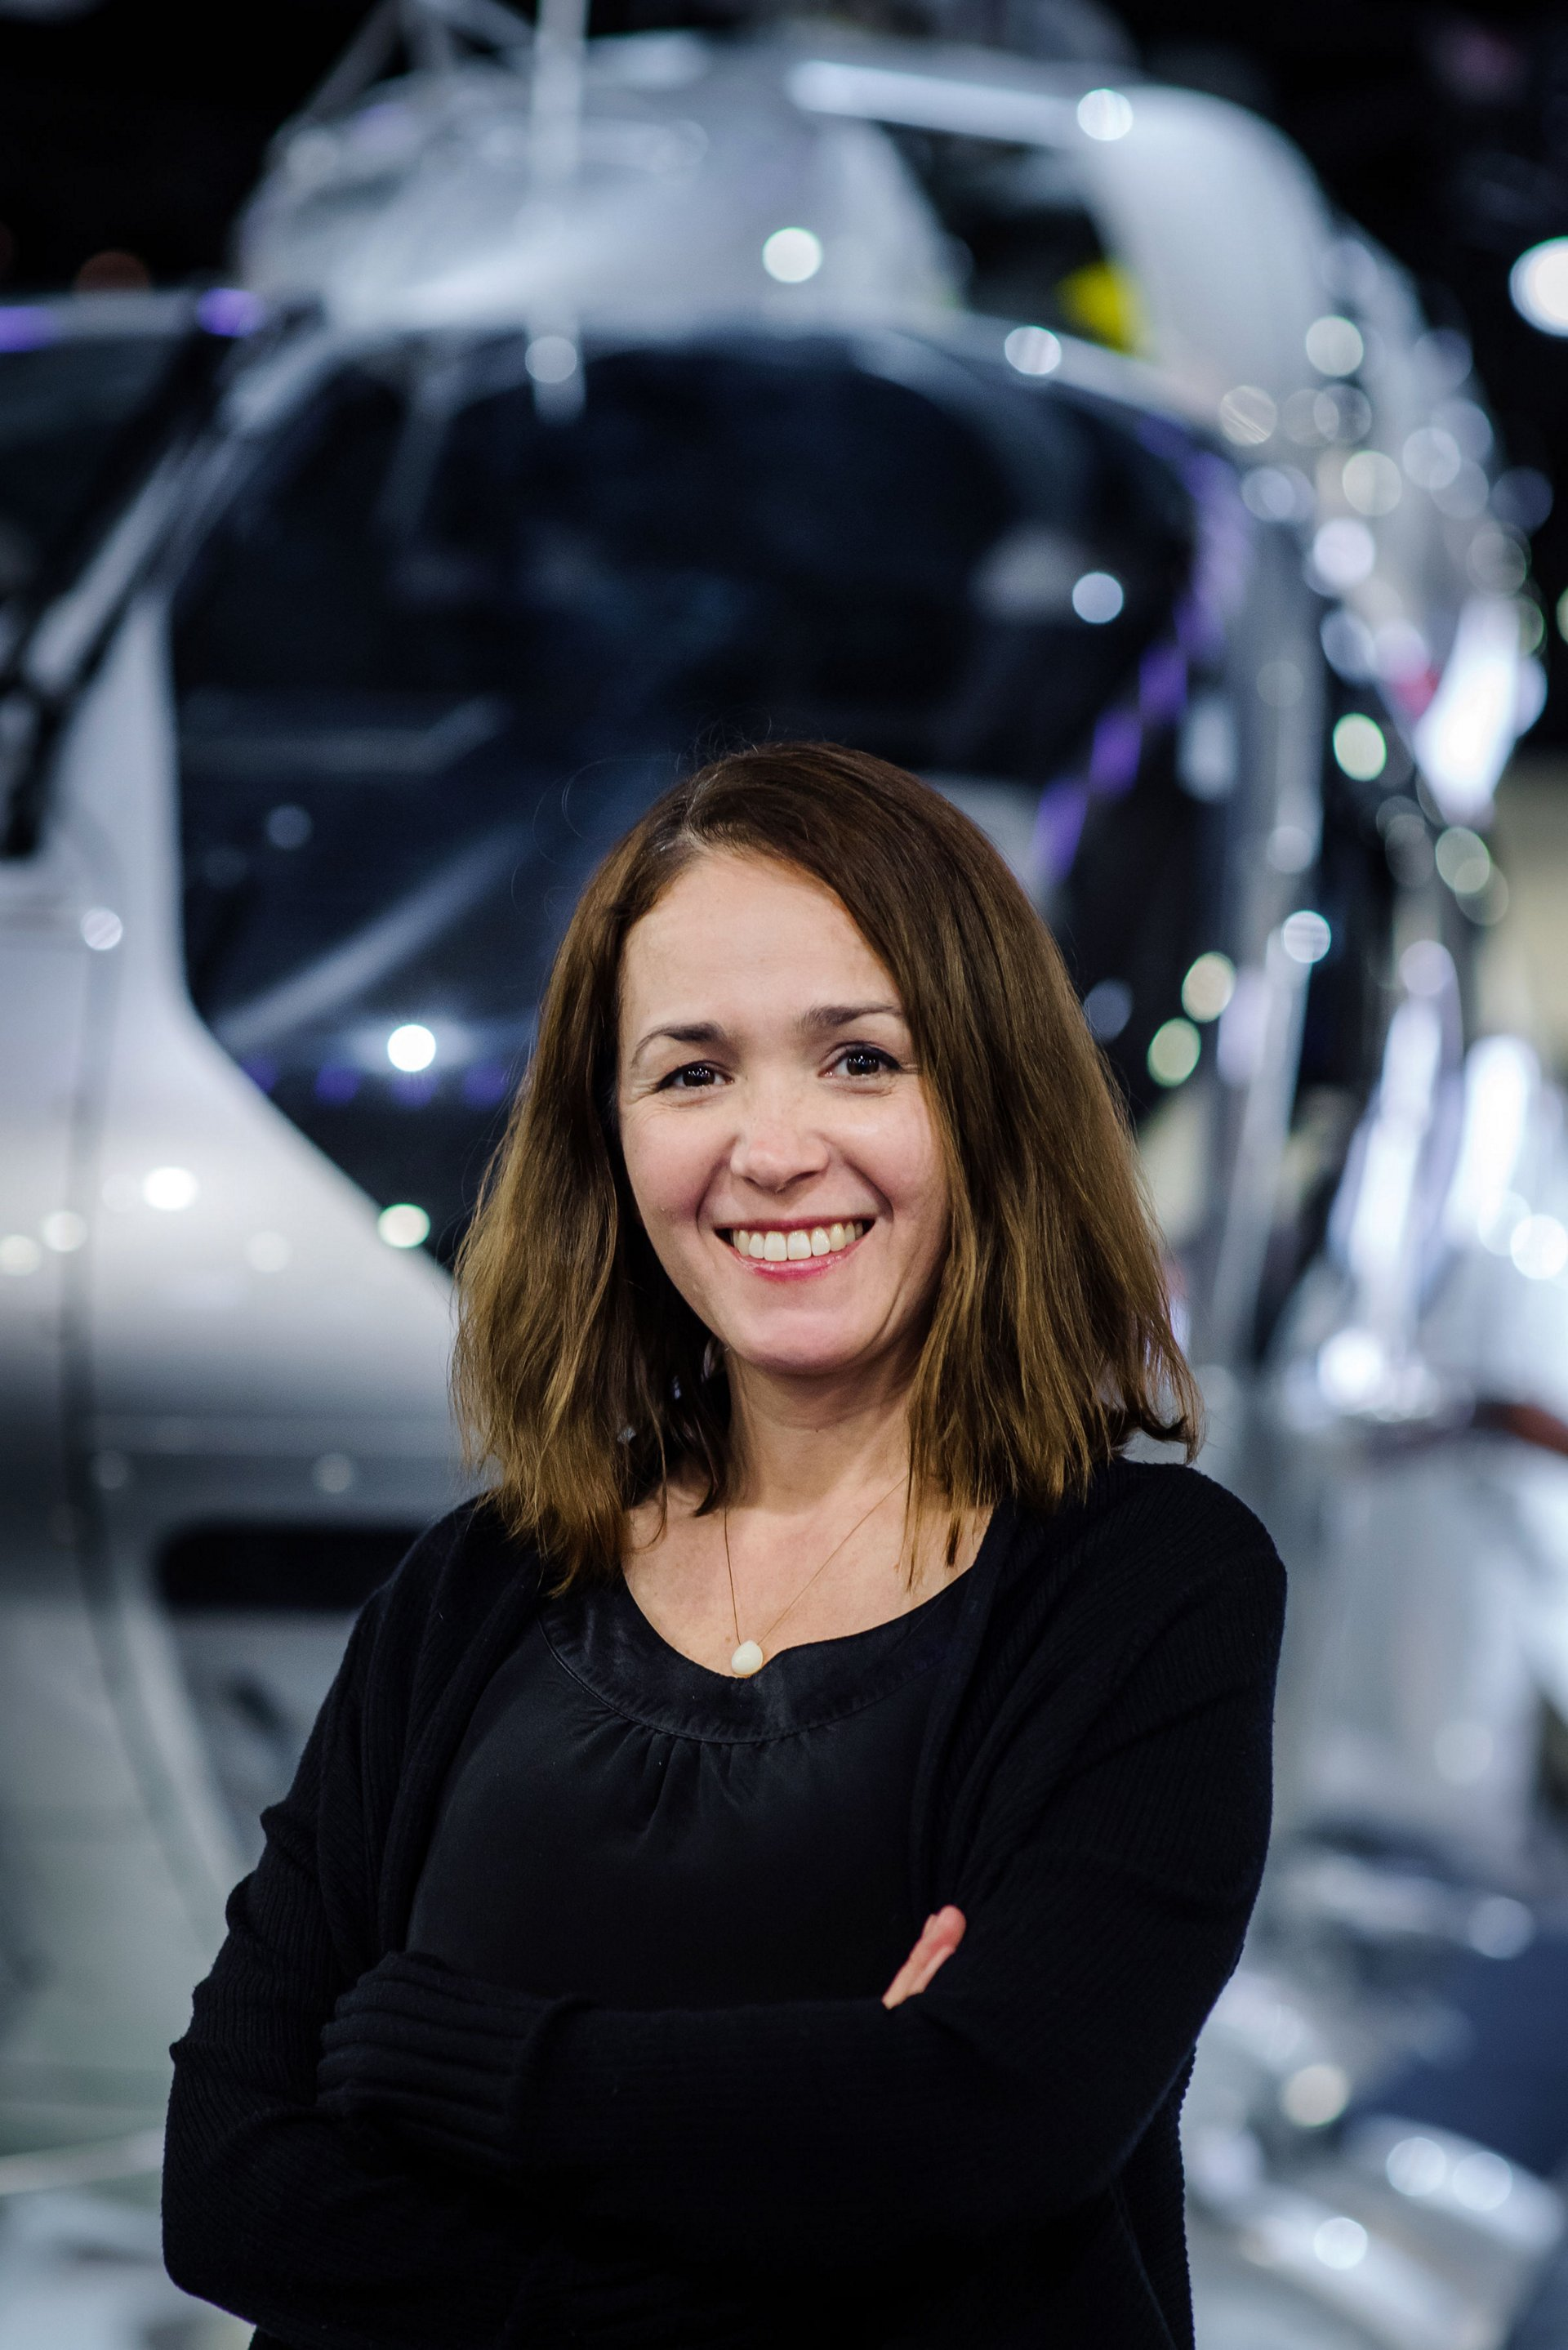 Laurence Petiard has been appointed Head of External Communications for Airbus Helicopters, effective January 2020.